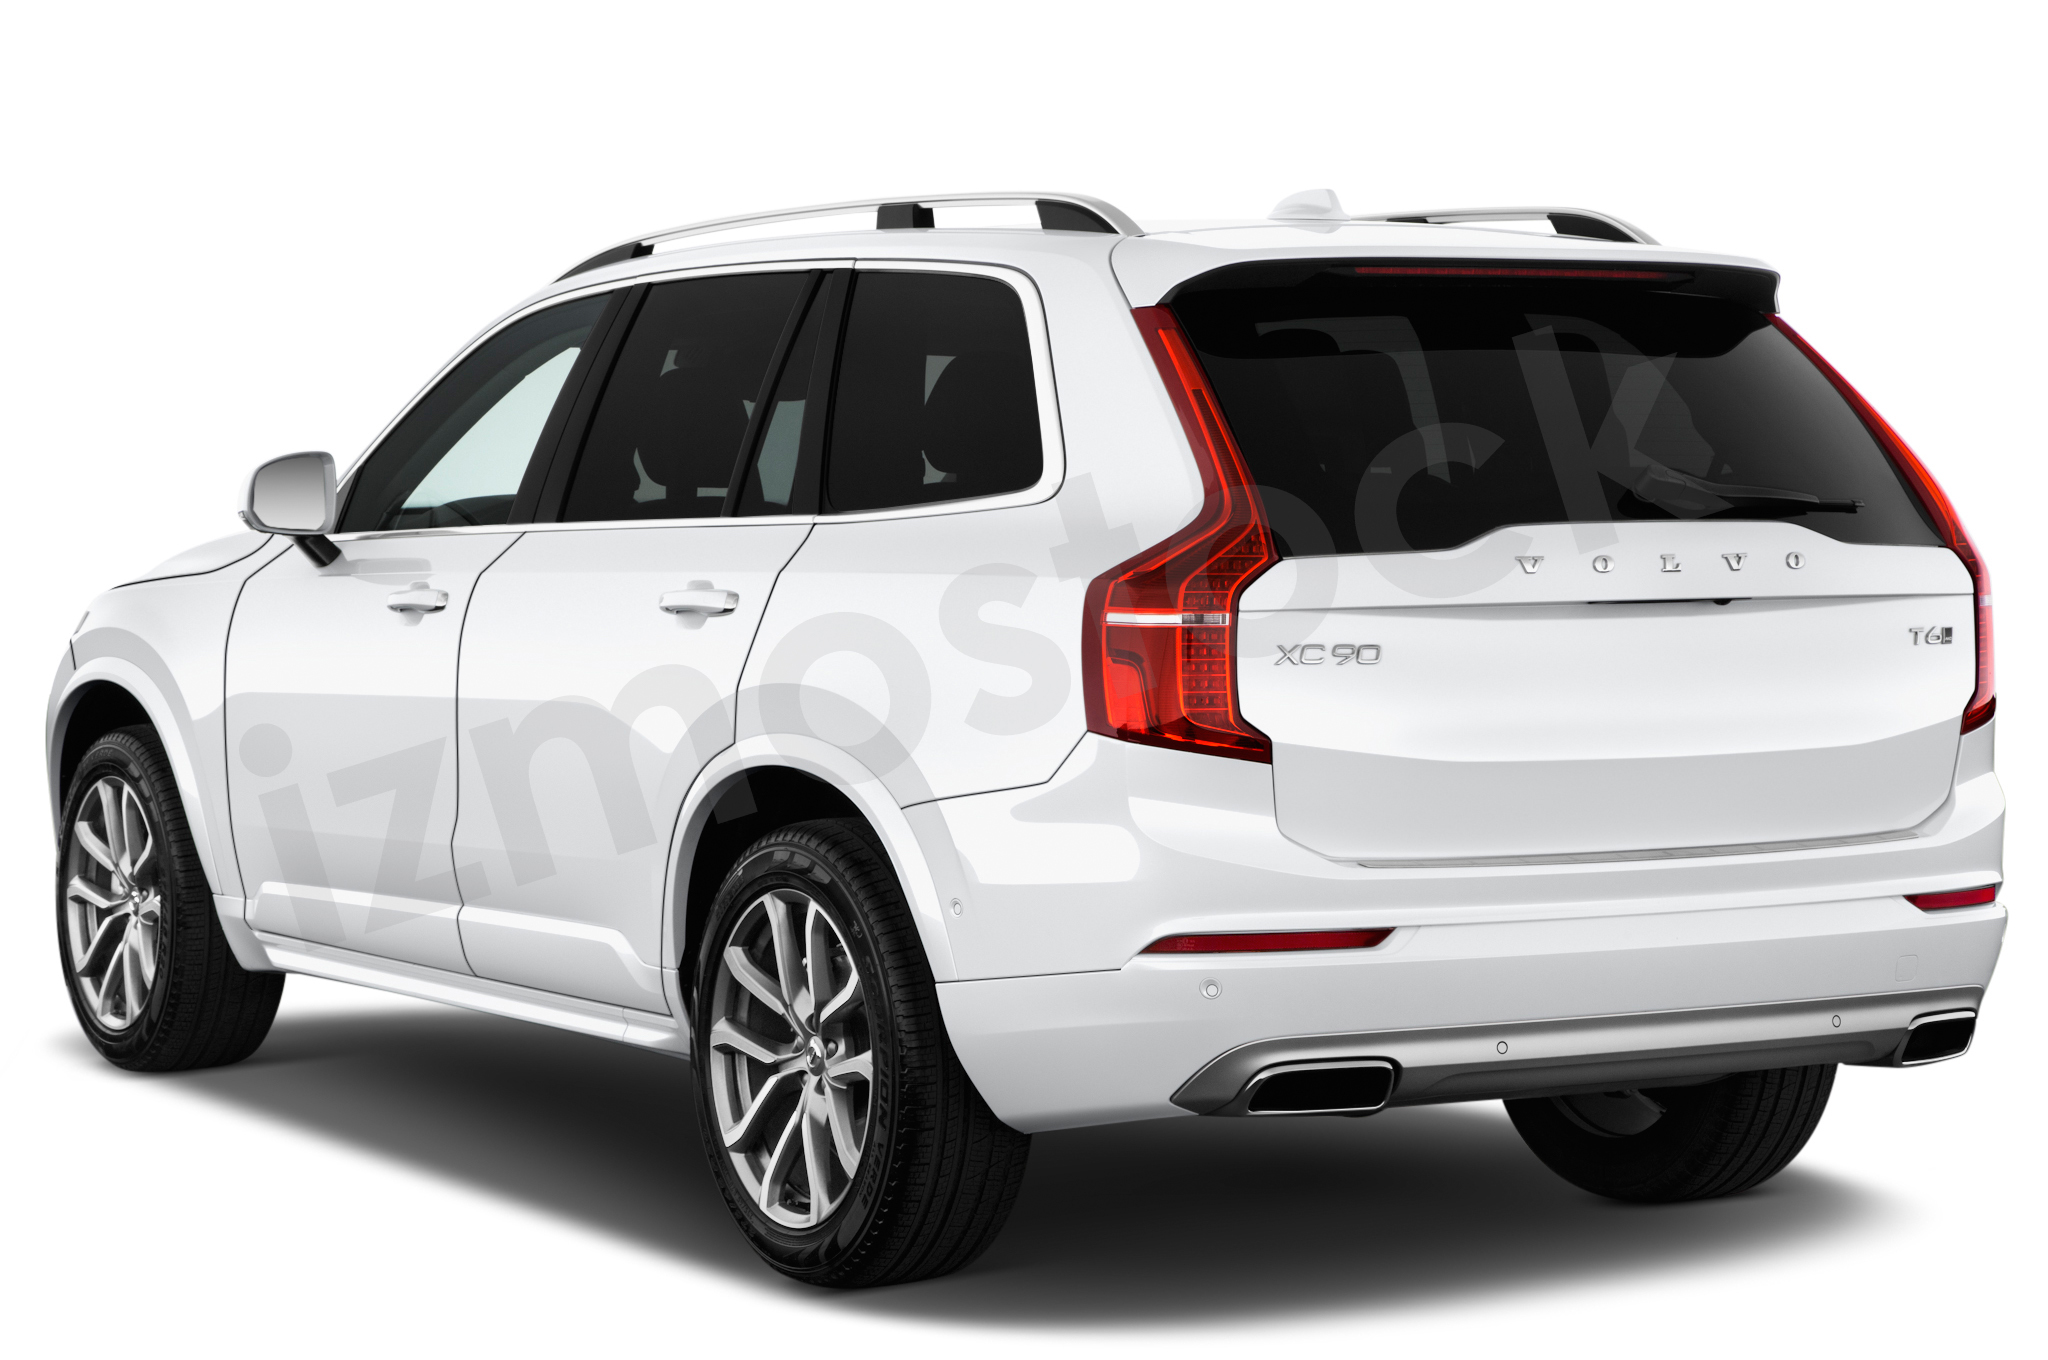 exterior prices swedens volvo video s sweden new king suv awd review